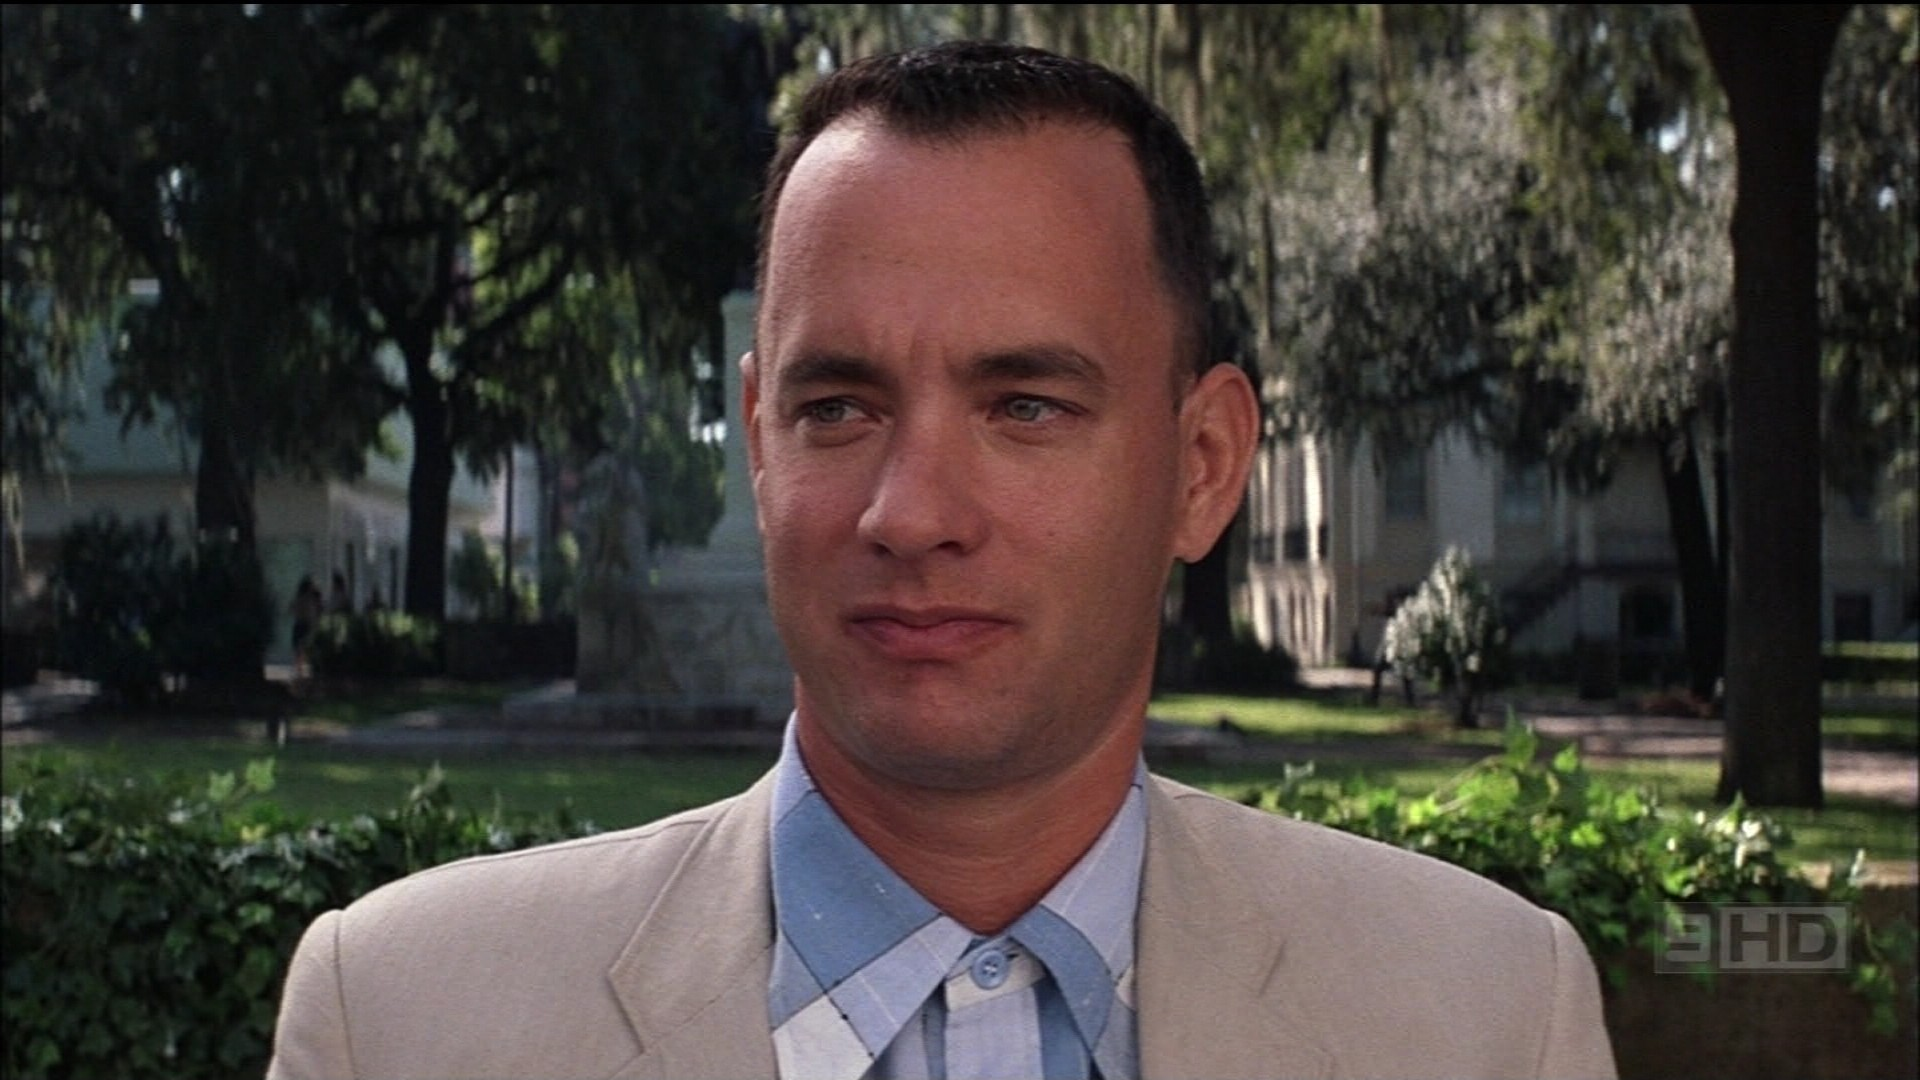 COURS, FORREST, COURSFORREST GUMPINNOUBLIABLE TOM HANKS